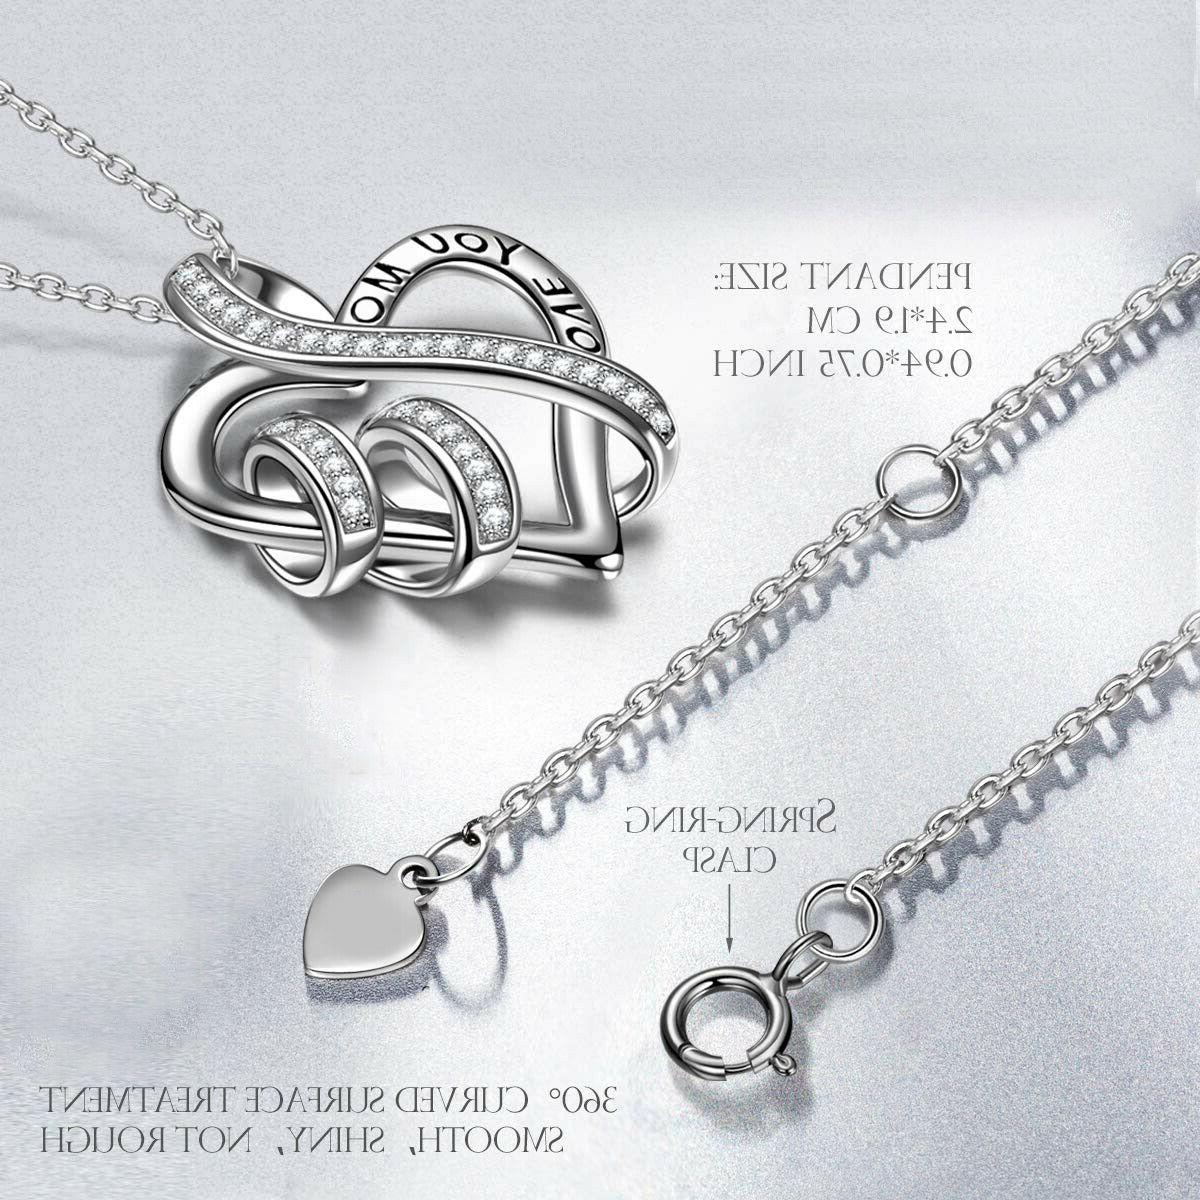 Stainless Bar Necklace Jewelry Gifts